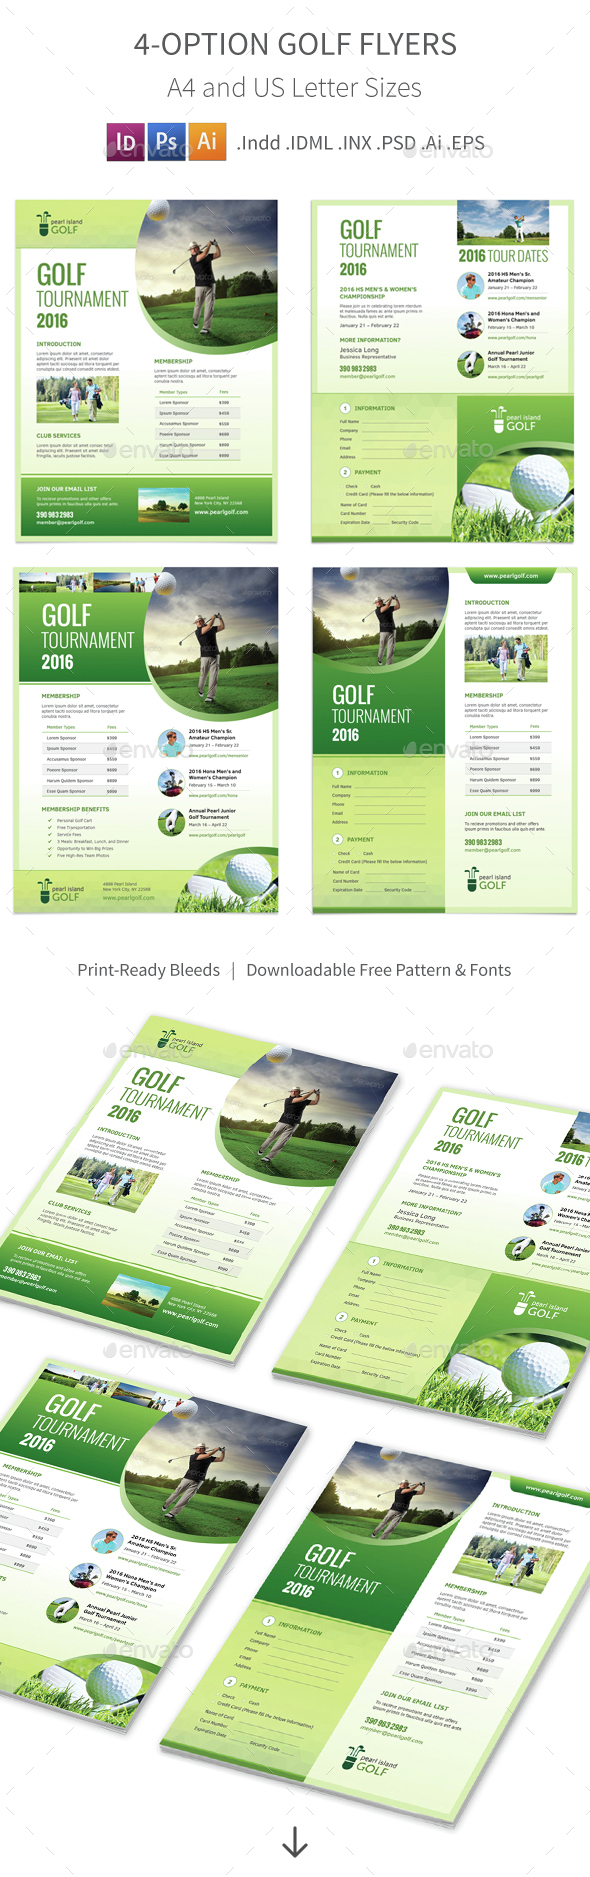 Golf Club Flyers – 4 Options - Corporate Flyers